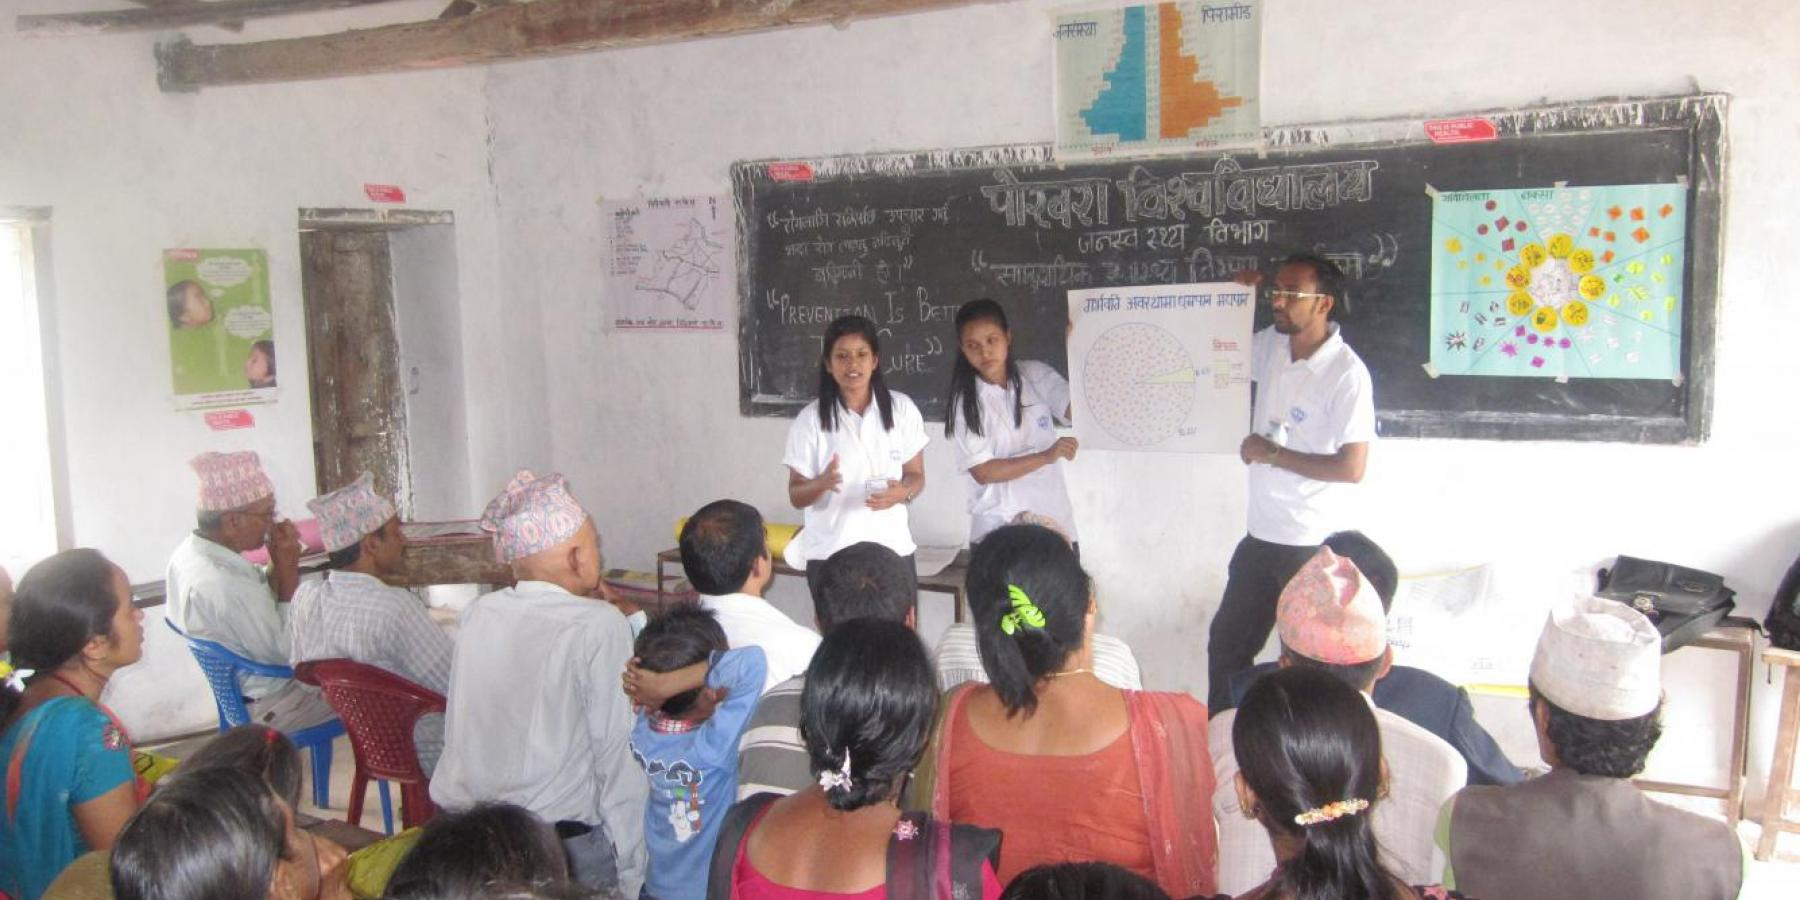 Health volunteers explain a pie chart with data on pregnant women's consumption of tobacco and alcohol to community members in Chidipani, Palpa, Nepal.